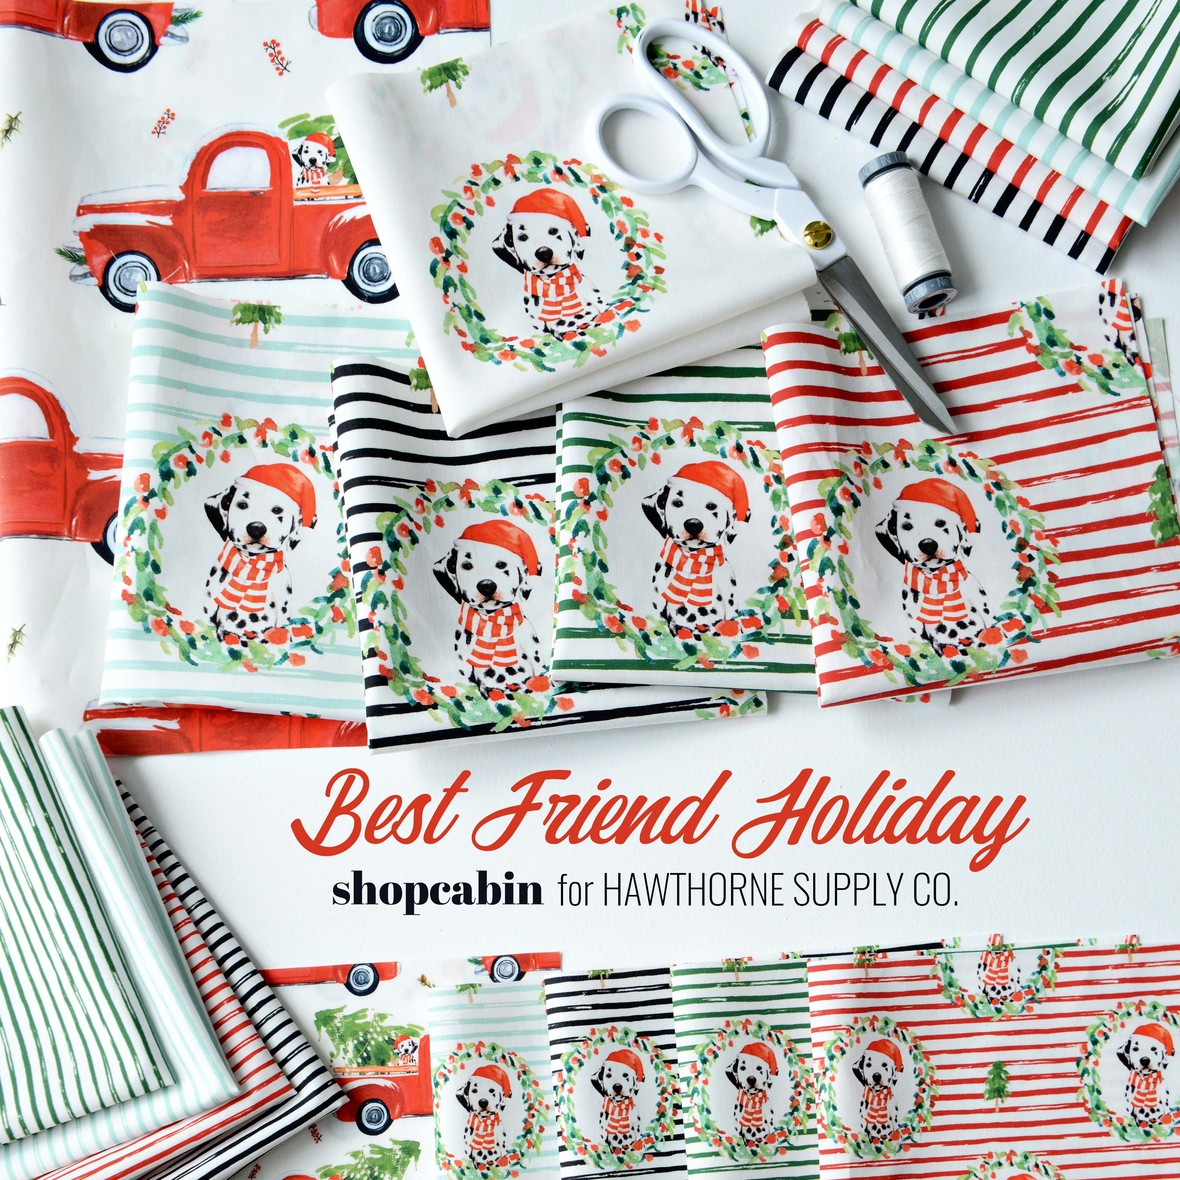 Best Friend Holiday Farbric Shopcabin for Hawthorne Supply Co